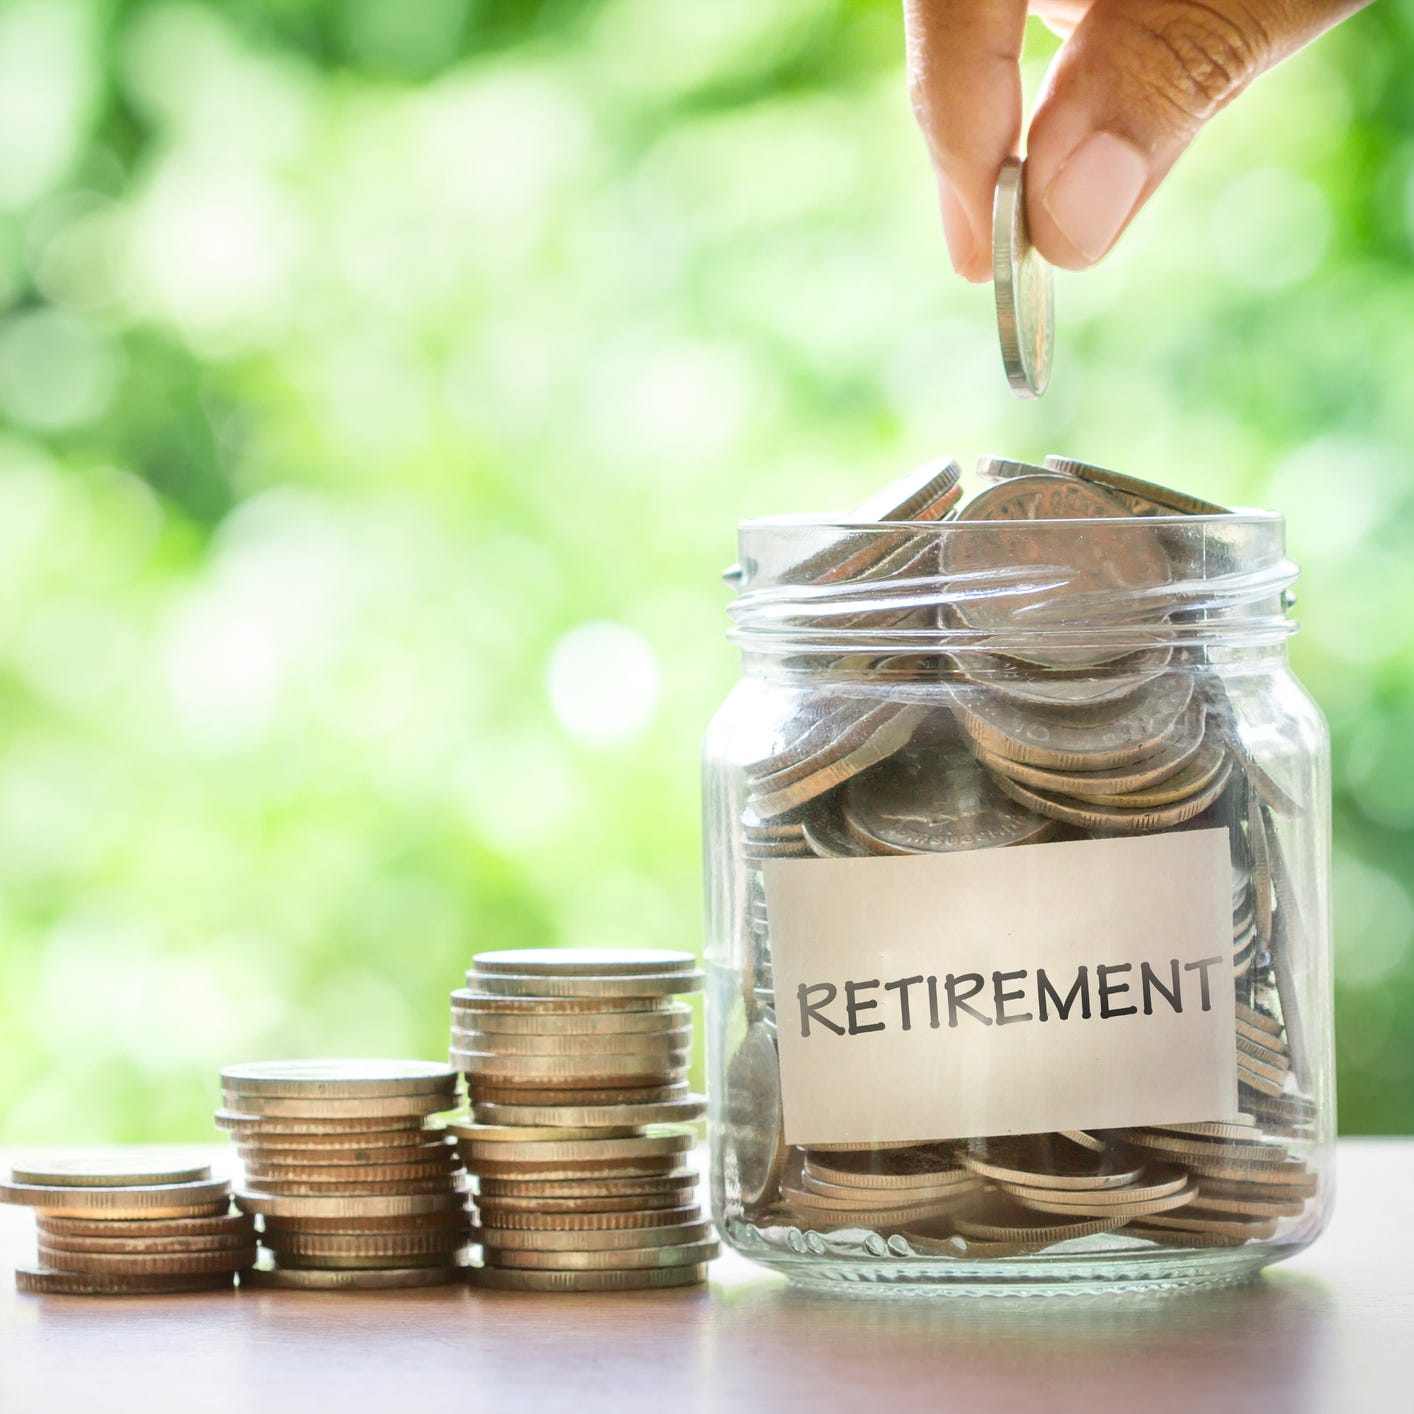 Can you afford to retire at 40? Or do you need to wait till 70?